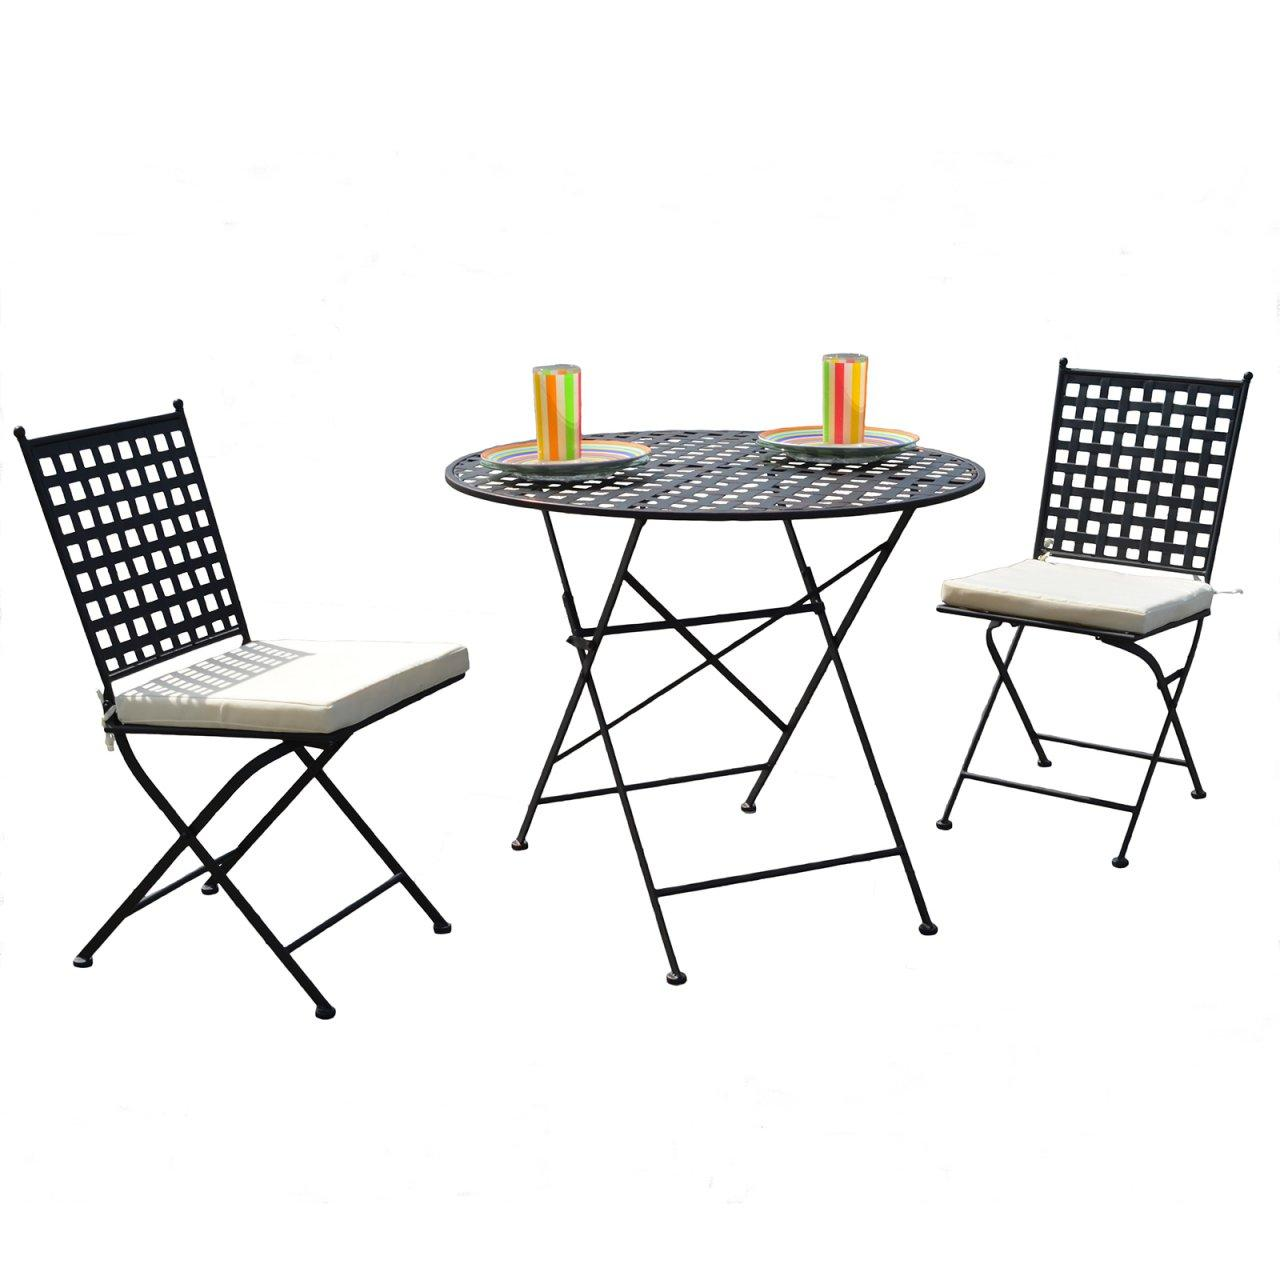 Bo Living SEA Patio Outdoors Set